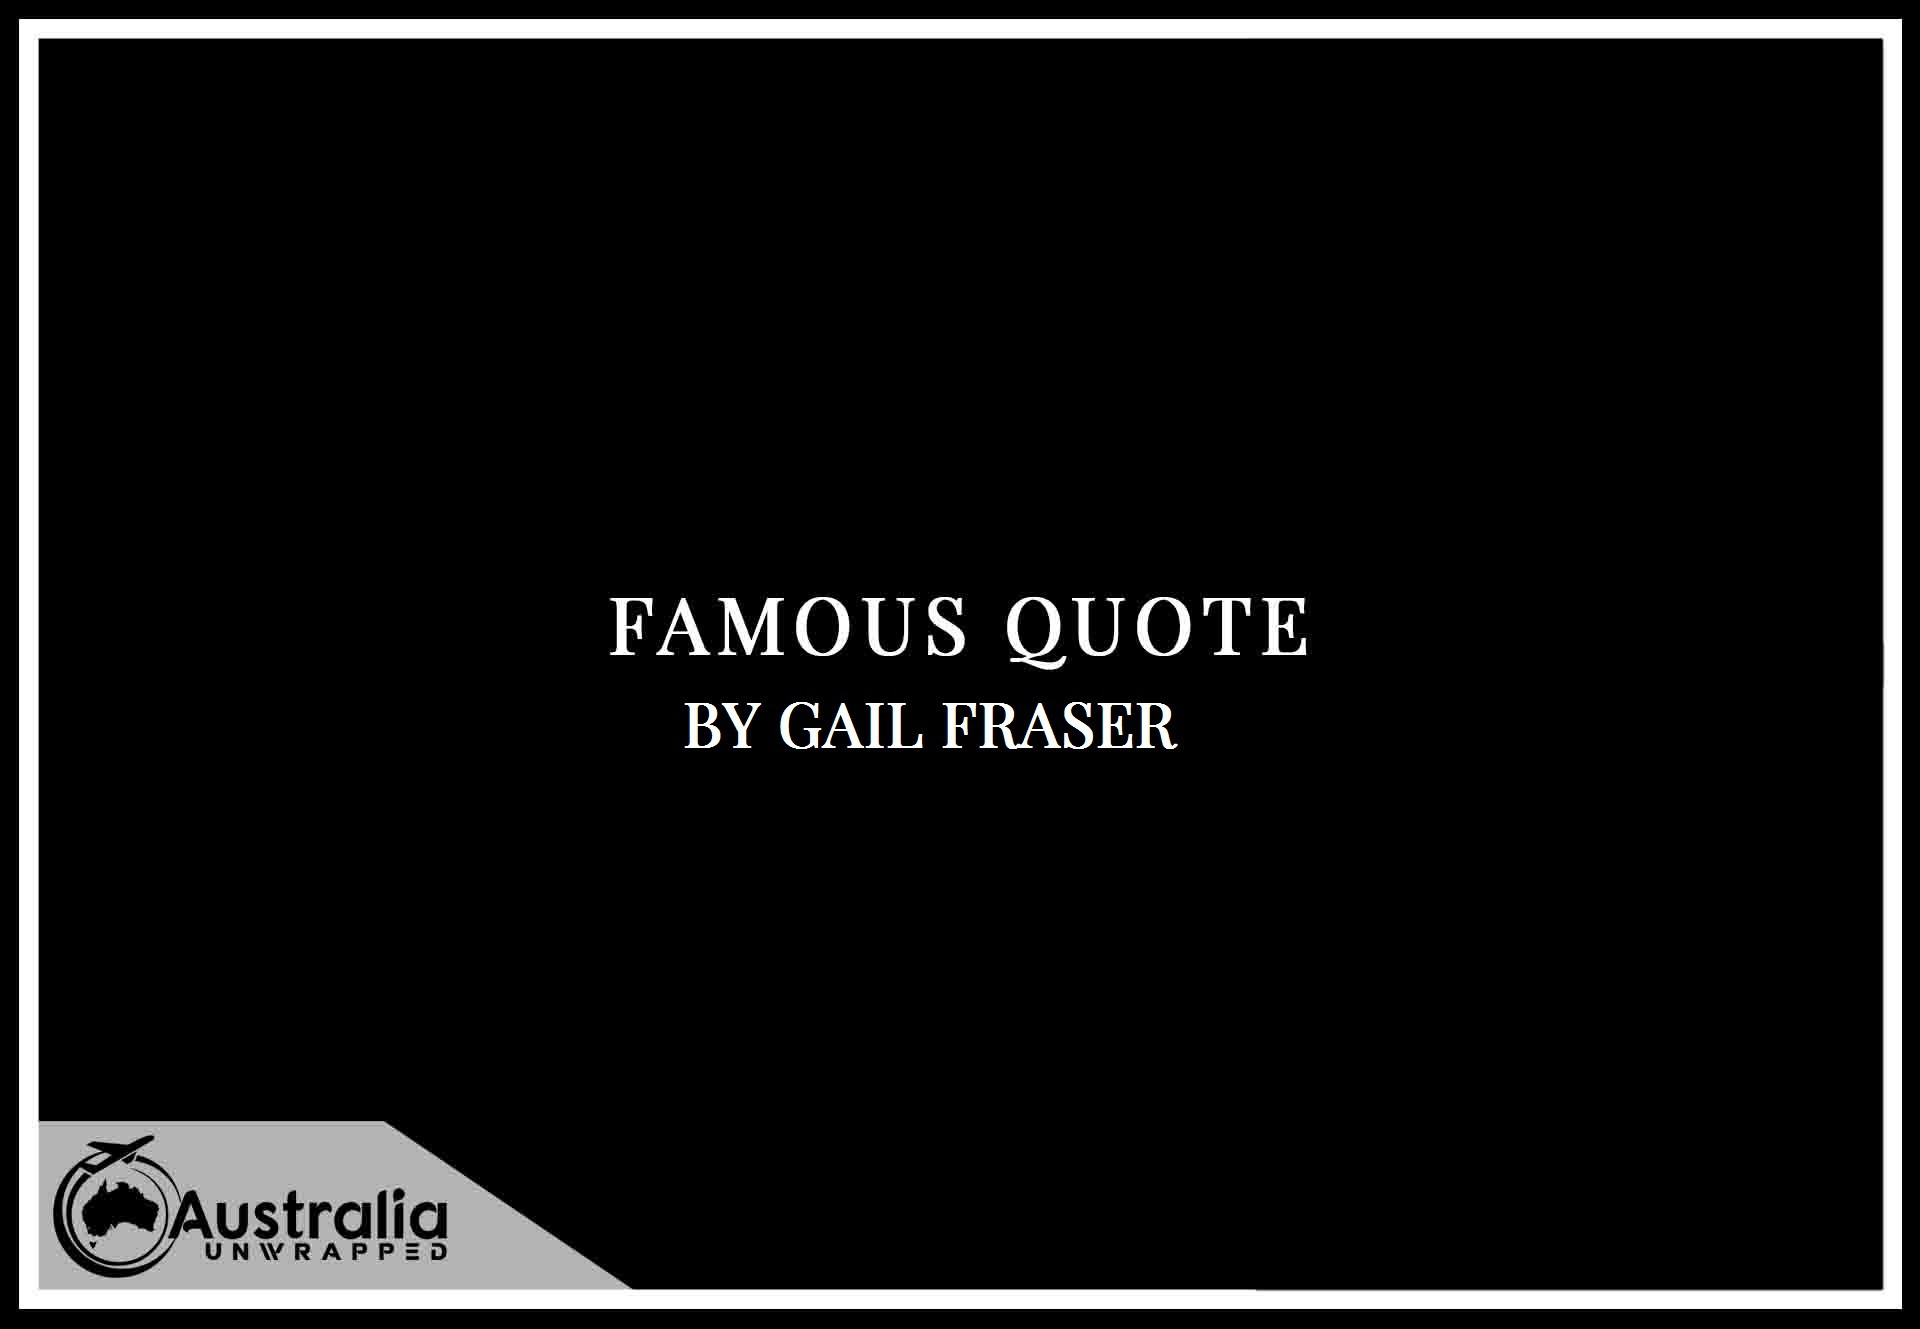 Gail Fraser's Top 1 Popular and Famous Quotes